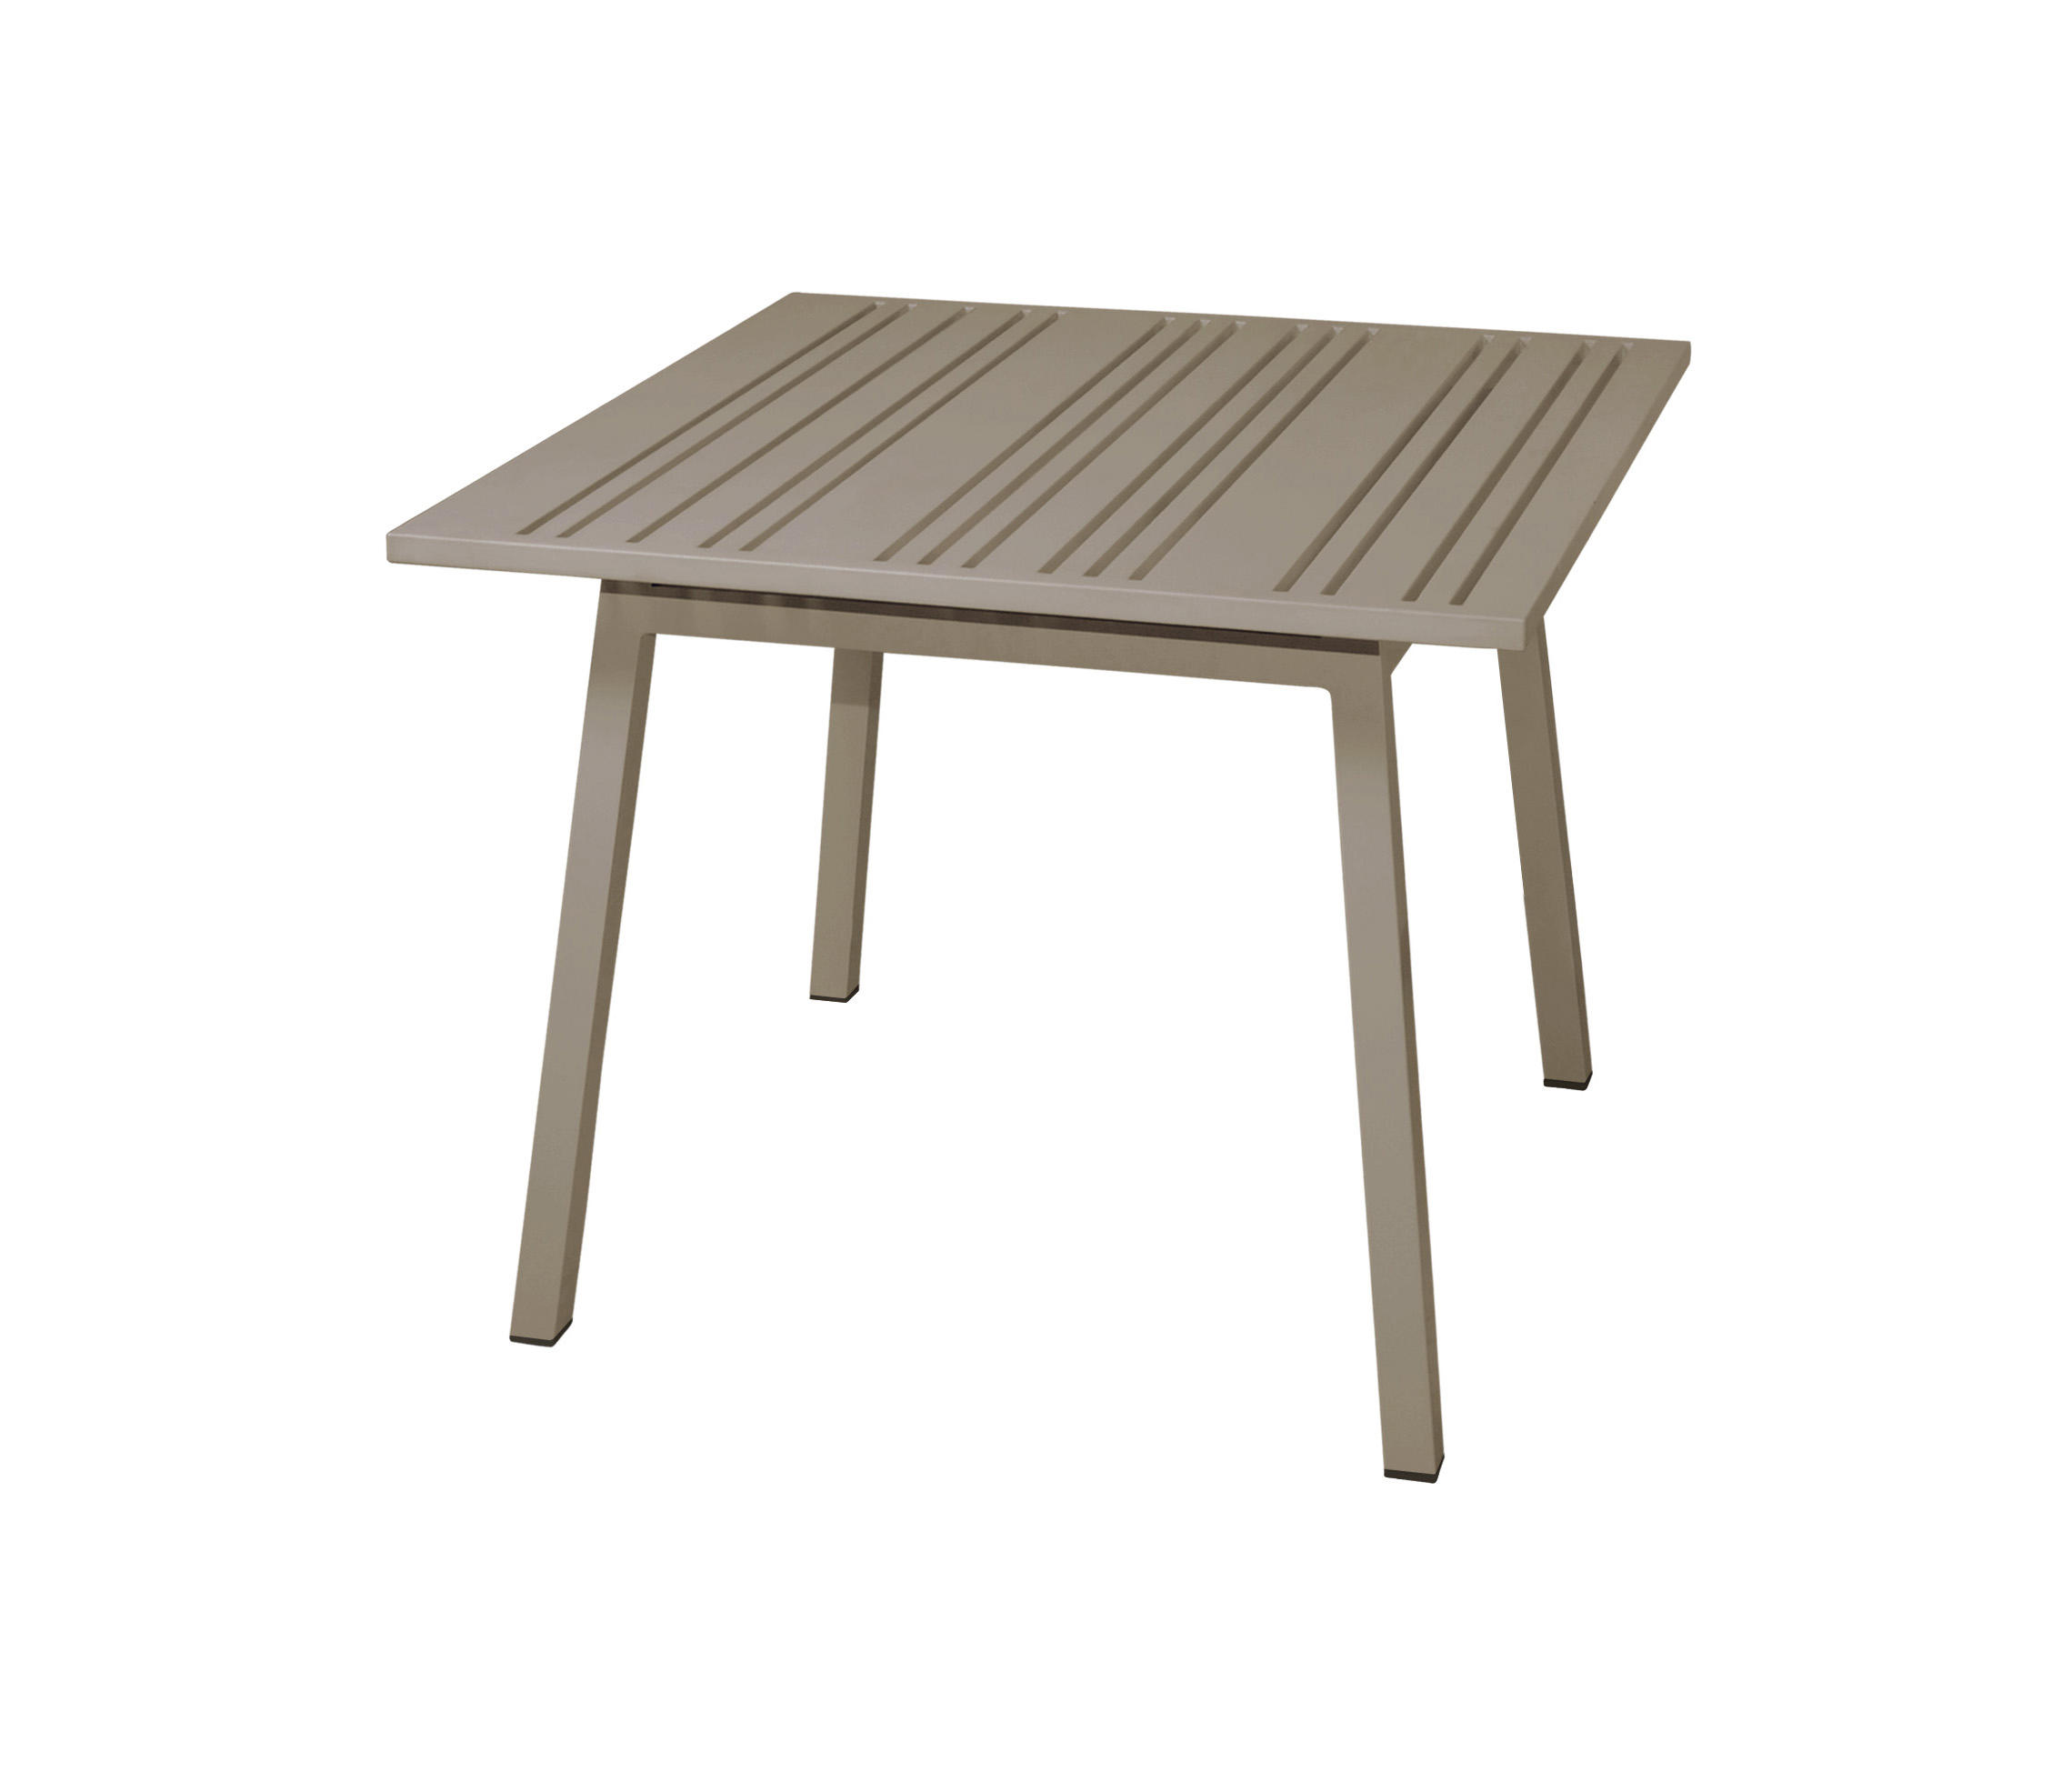 yuyup bistro table 90x90 cm dining tables from mamagreen. Black Bedroom Furniture Sets. Home Design Ideas